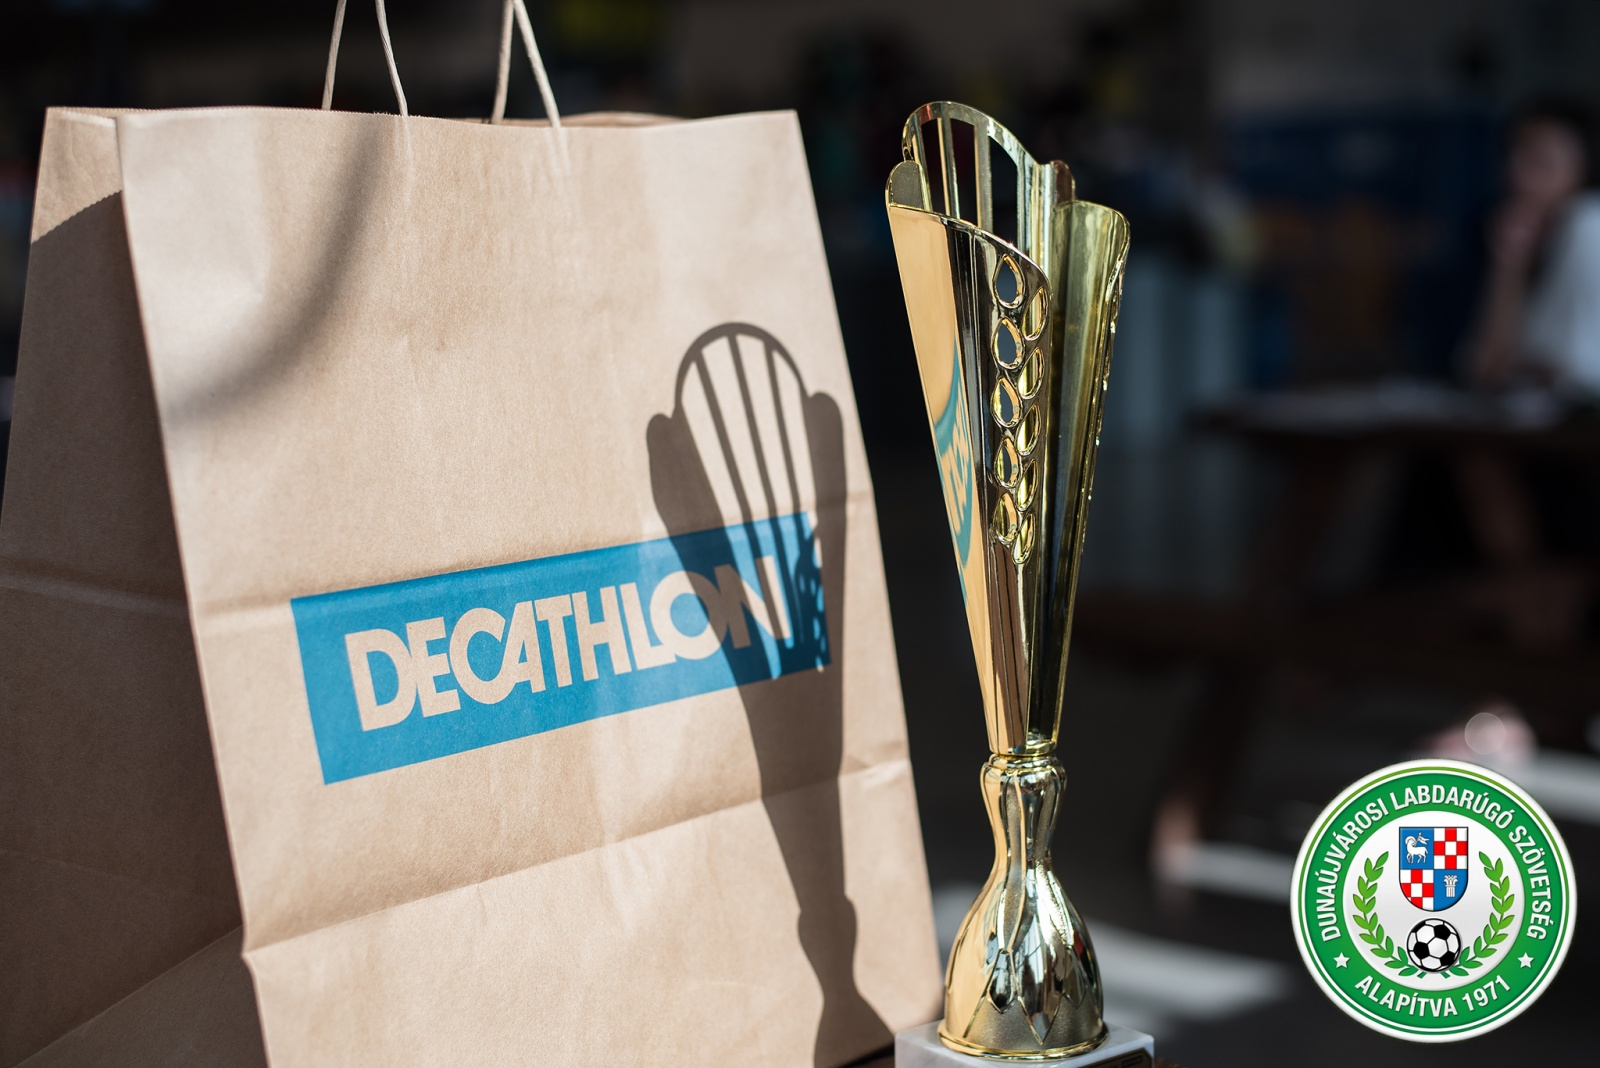 Decathlon DLSZ 2017